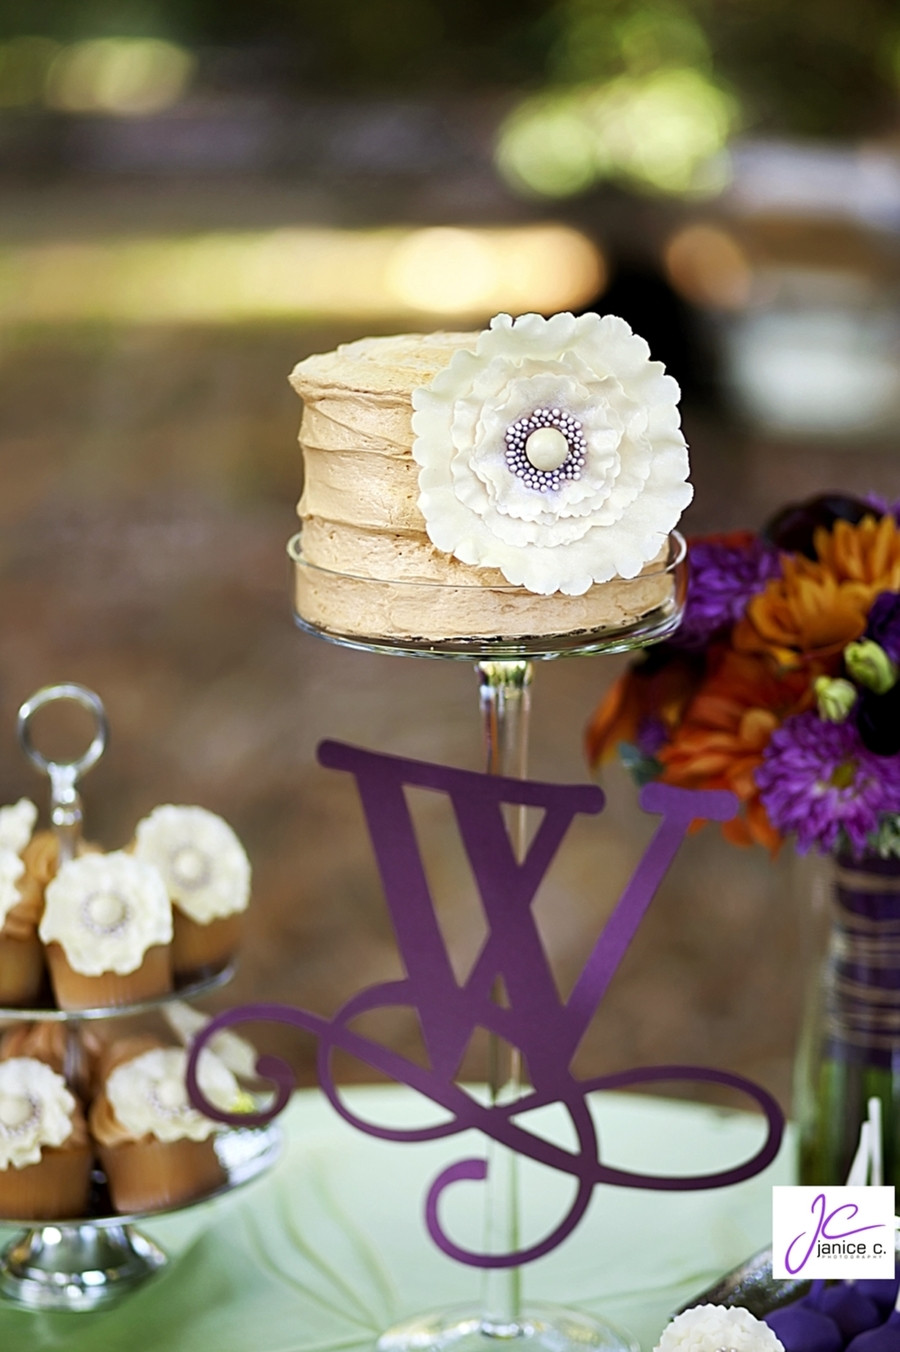 Small Rustic Wedding Cakes  Rustic Small Wedding Cake With Ruffled Flowers